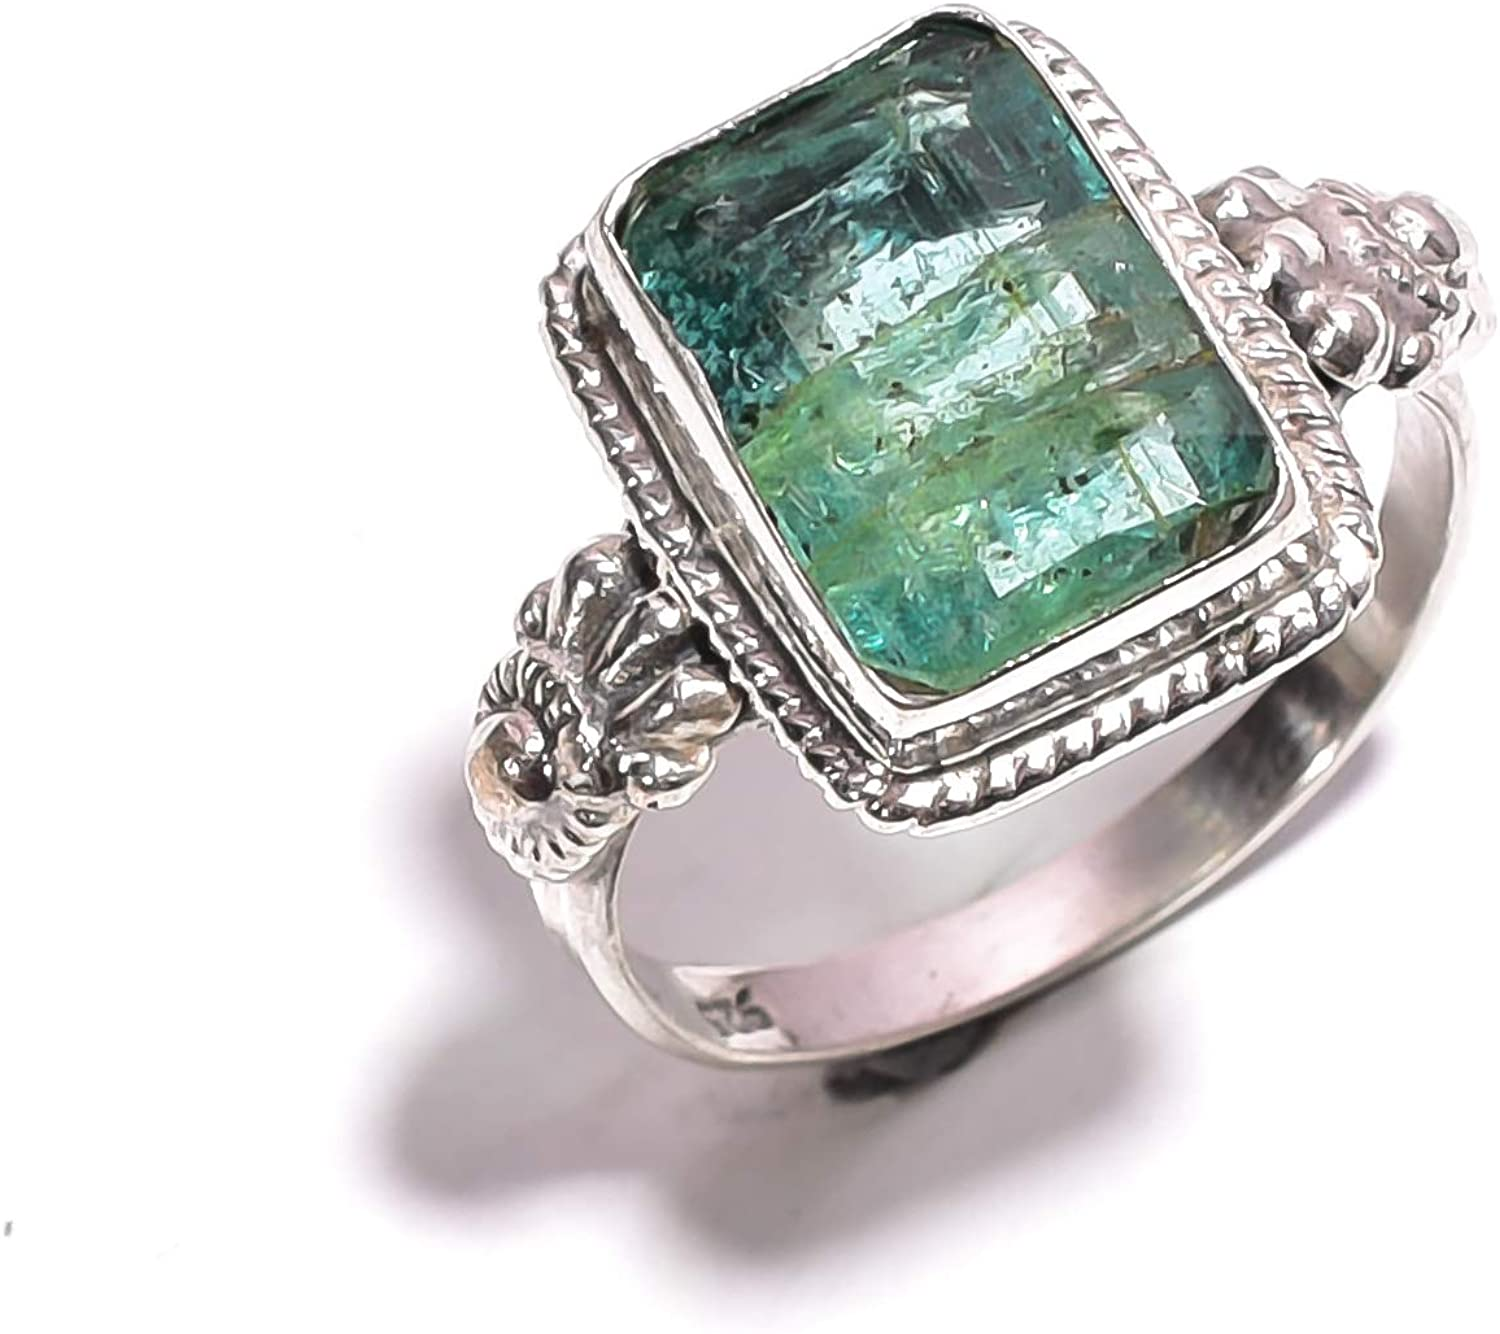 mughal gems & jewellery 925 Sterling Silver Ring Natural Green Aventurine Gemstone Fine Jewelry Ring for All Type of Ladies (7 US Size)